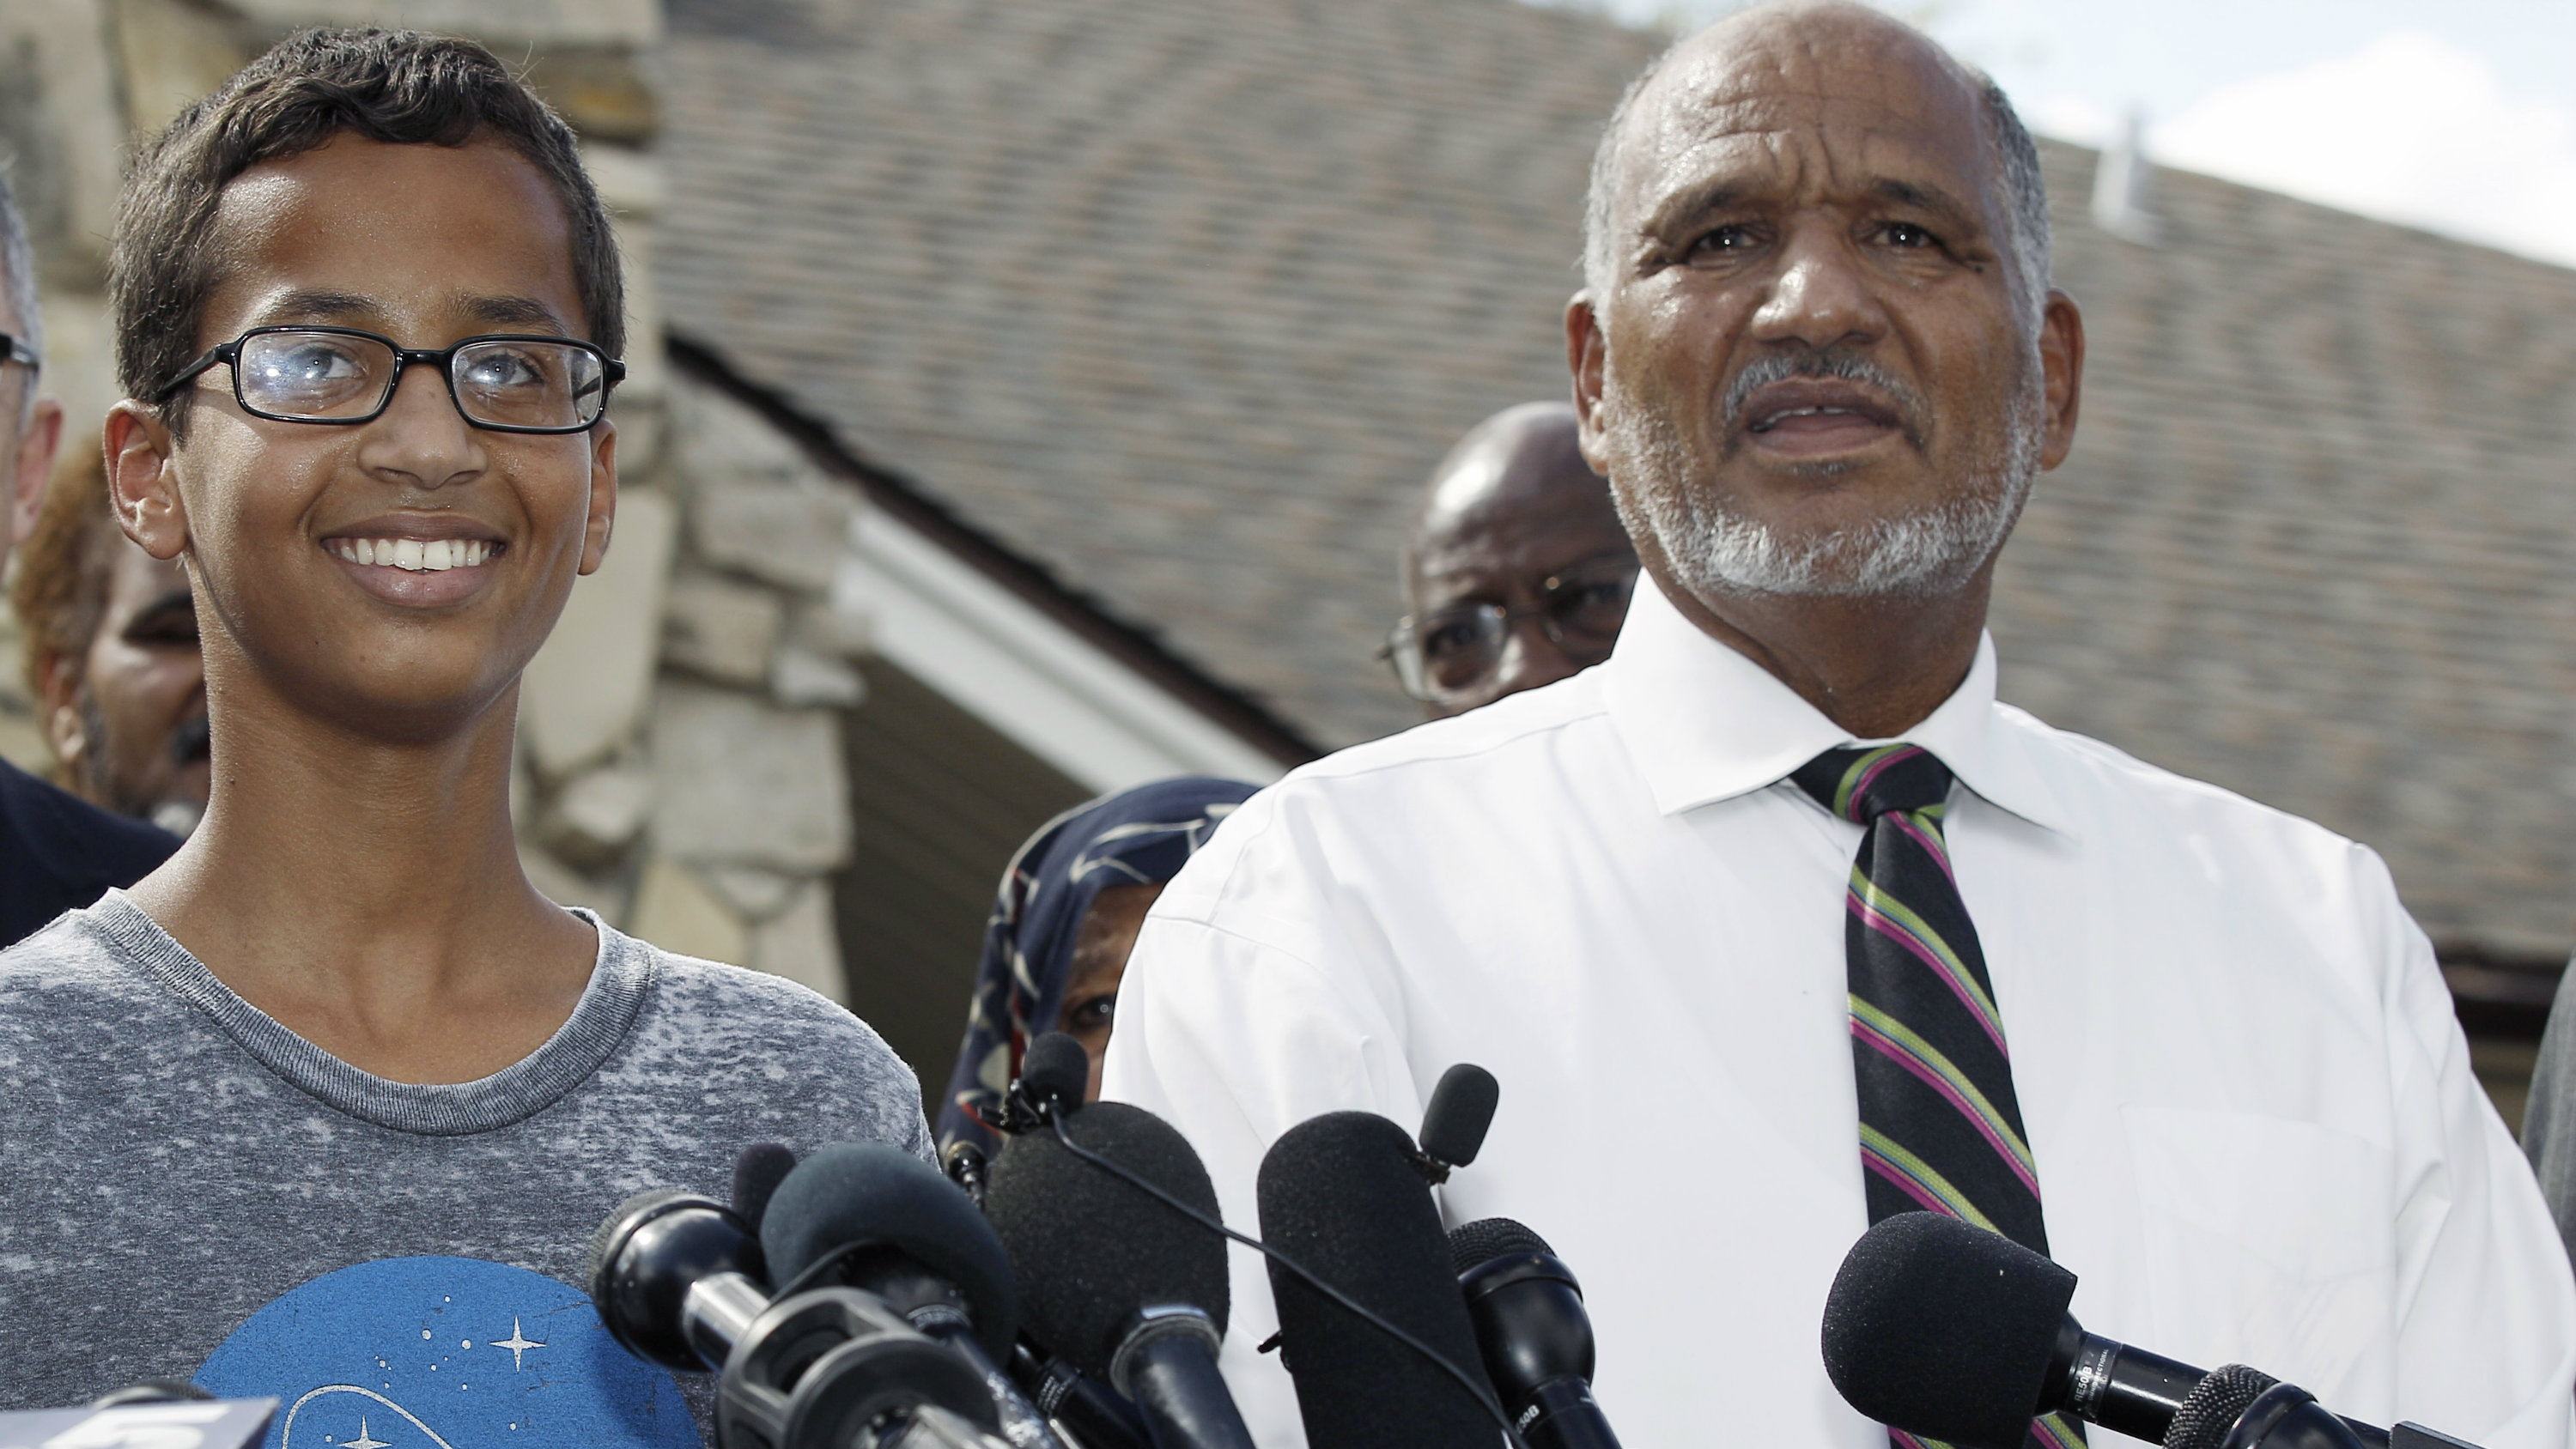 Ahmed Mohamed, 14, left, and his father, Mohamed Elhassan Mohamed, thank supporters during a news conference at their home, Wednesday, Sept. 16, 2015, in Irving, Texas